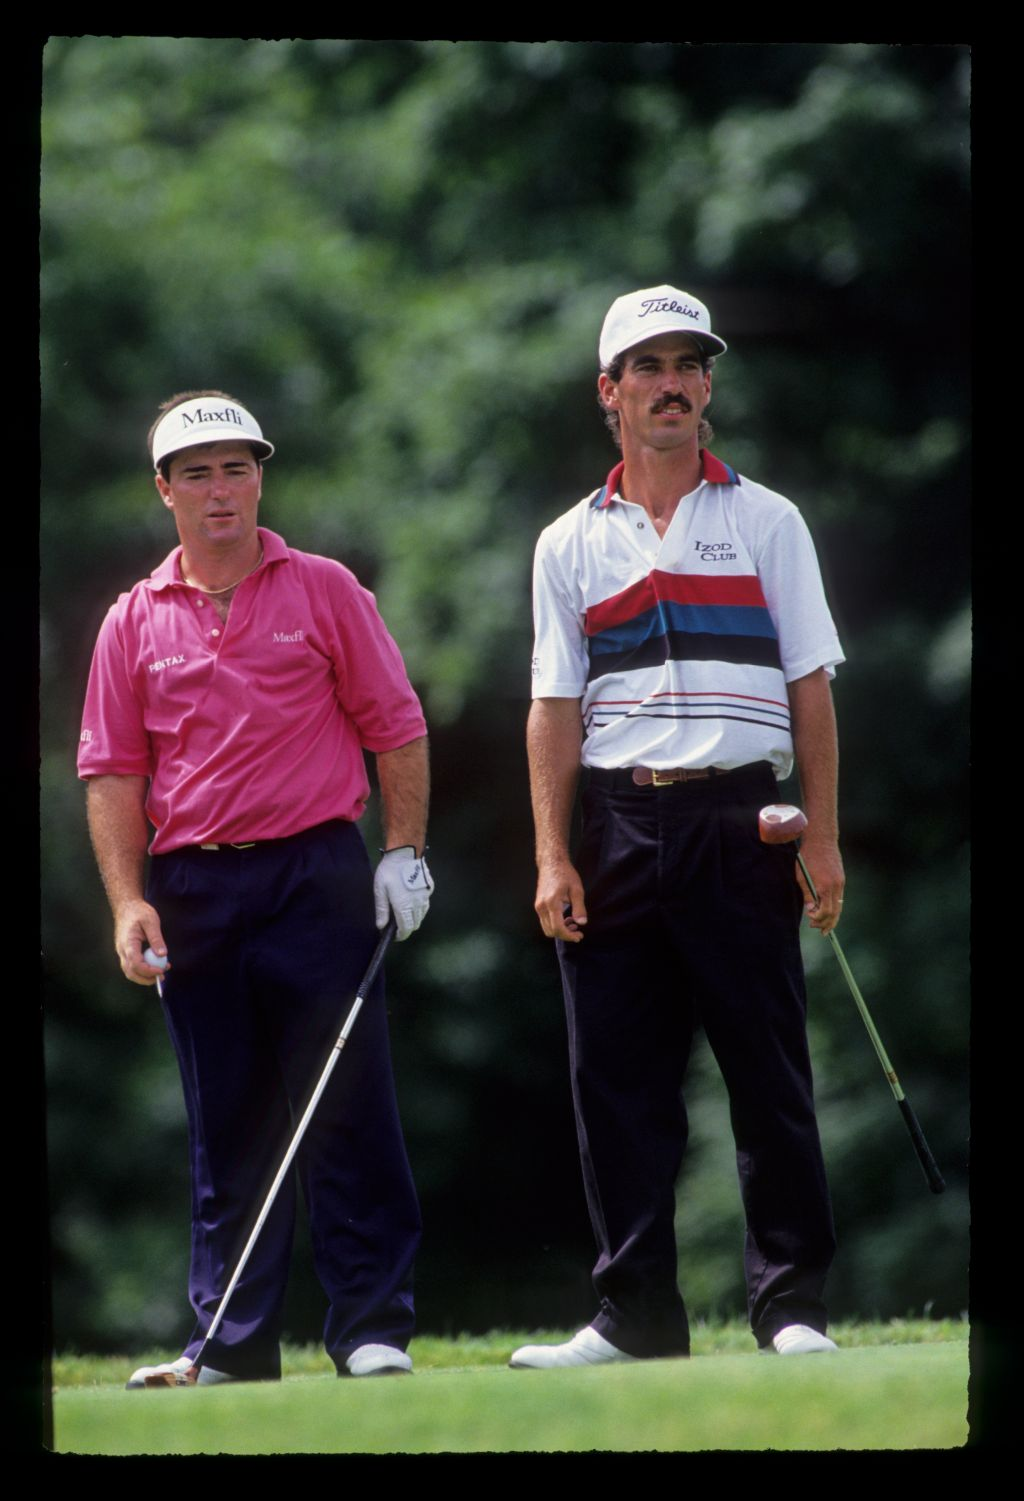 Craig Parry and Corey Pavin on the tee during the 1991 US Open